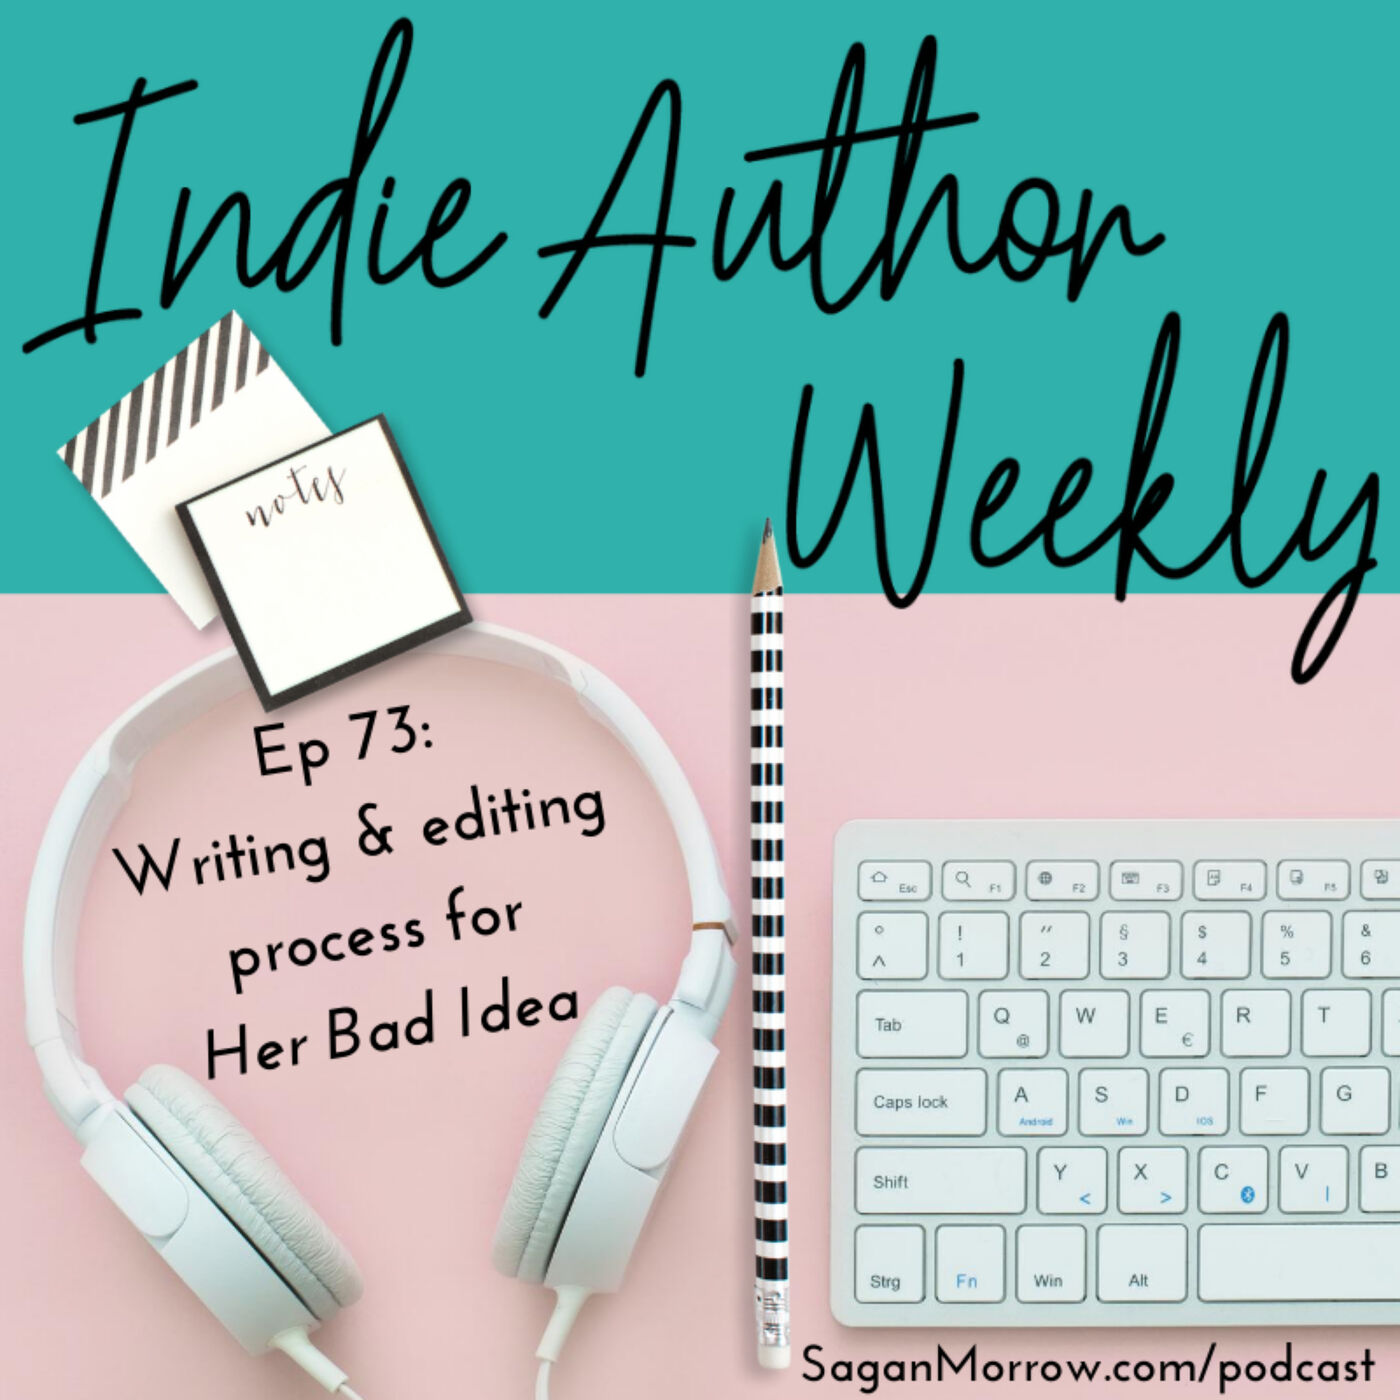 073: Writing and editing process for Her Bad Idea